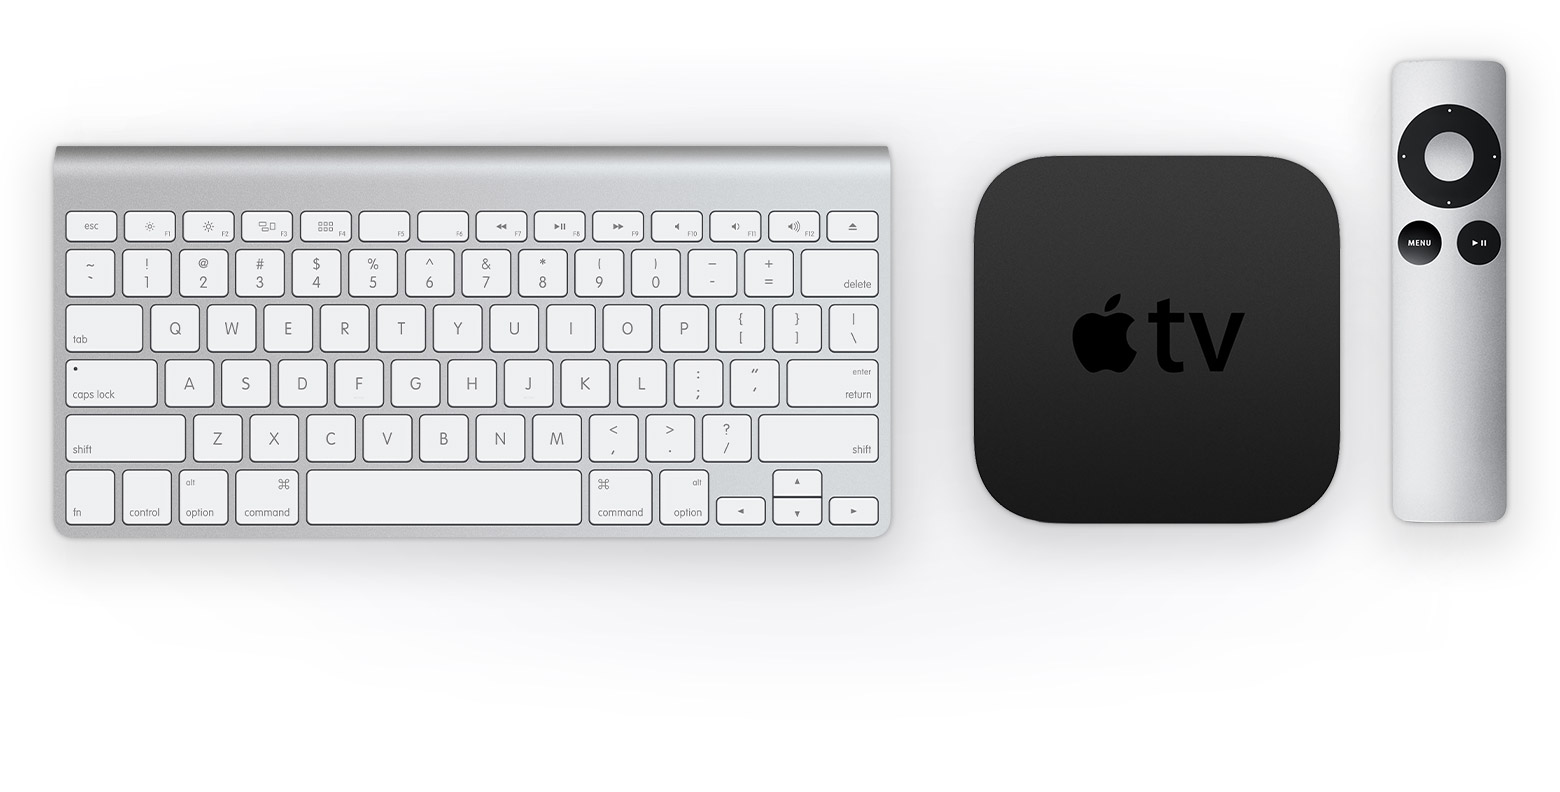 Pair a wireless keyboard with your Apple TV